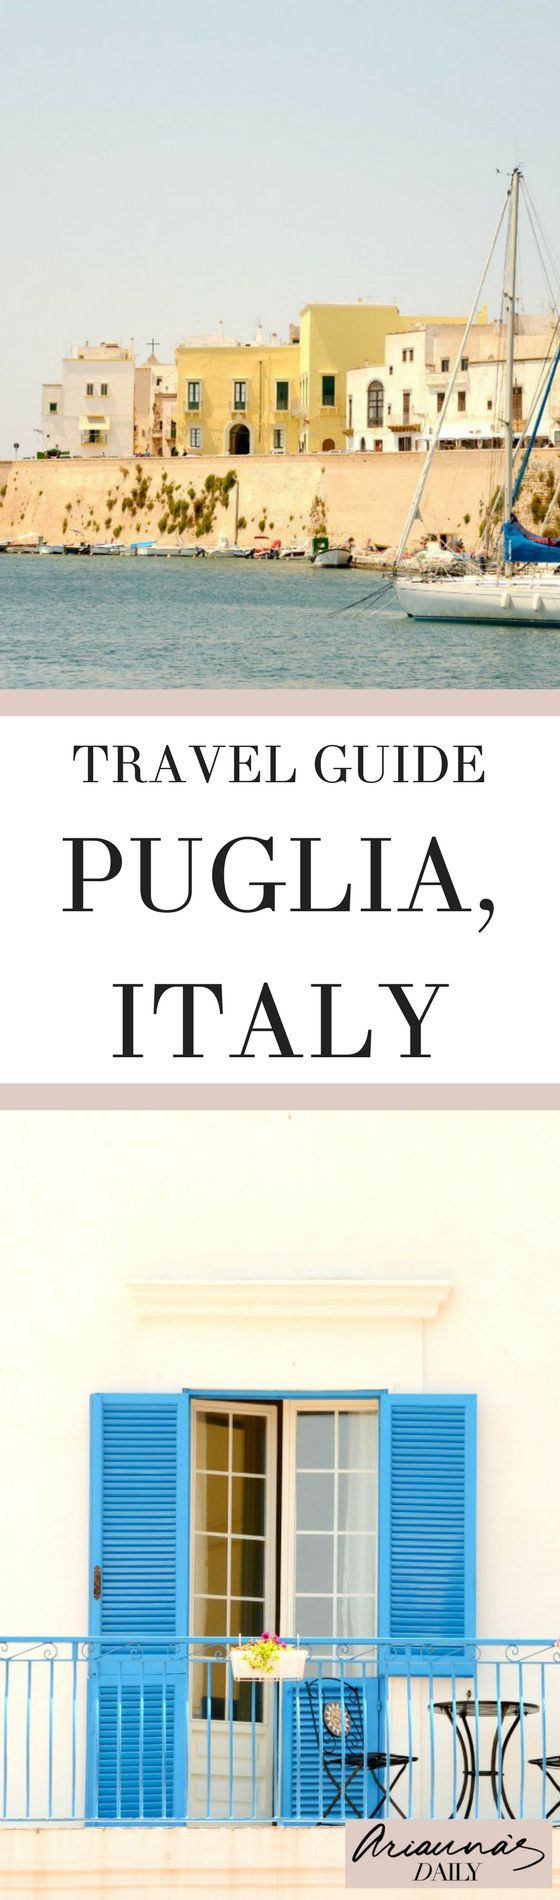 If you're looking for the best travel guide on what to see and do in Puglia, Italy look no further. Click through for a great tour of gallipoli and Santa Maria di Leuca. Perfect for your next Italian holiday #travelblogger #puglia #italytravelguide #italianholiday